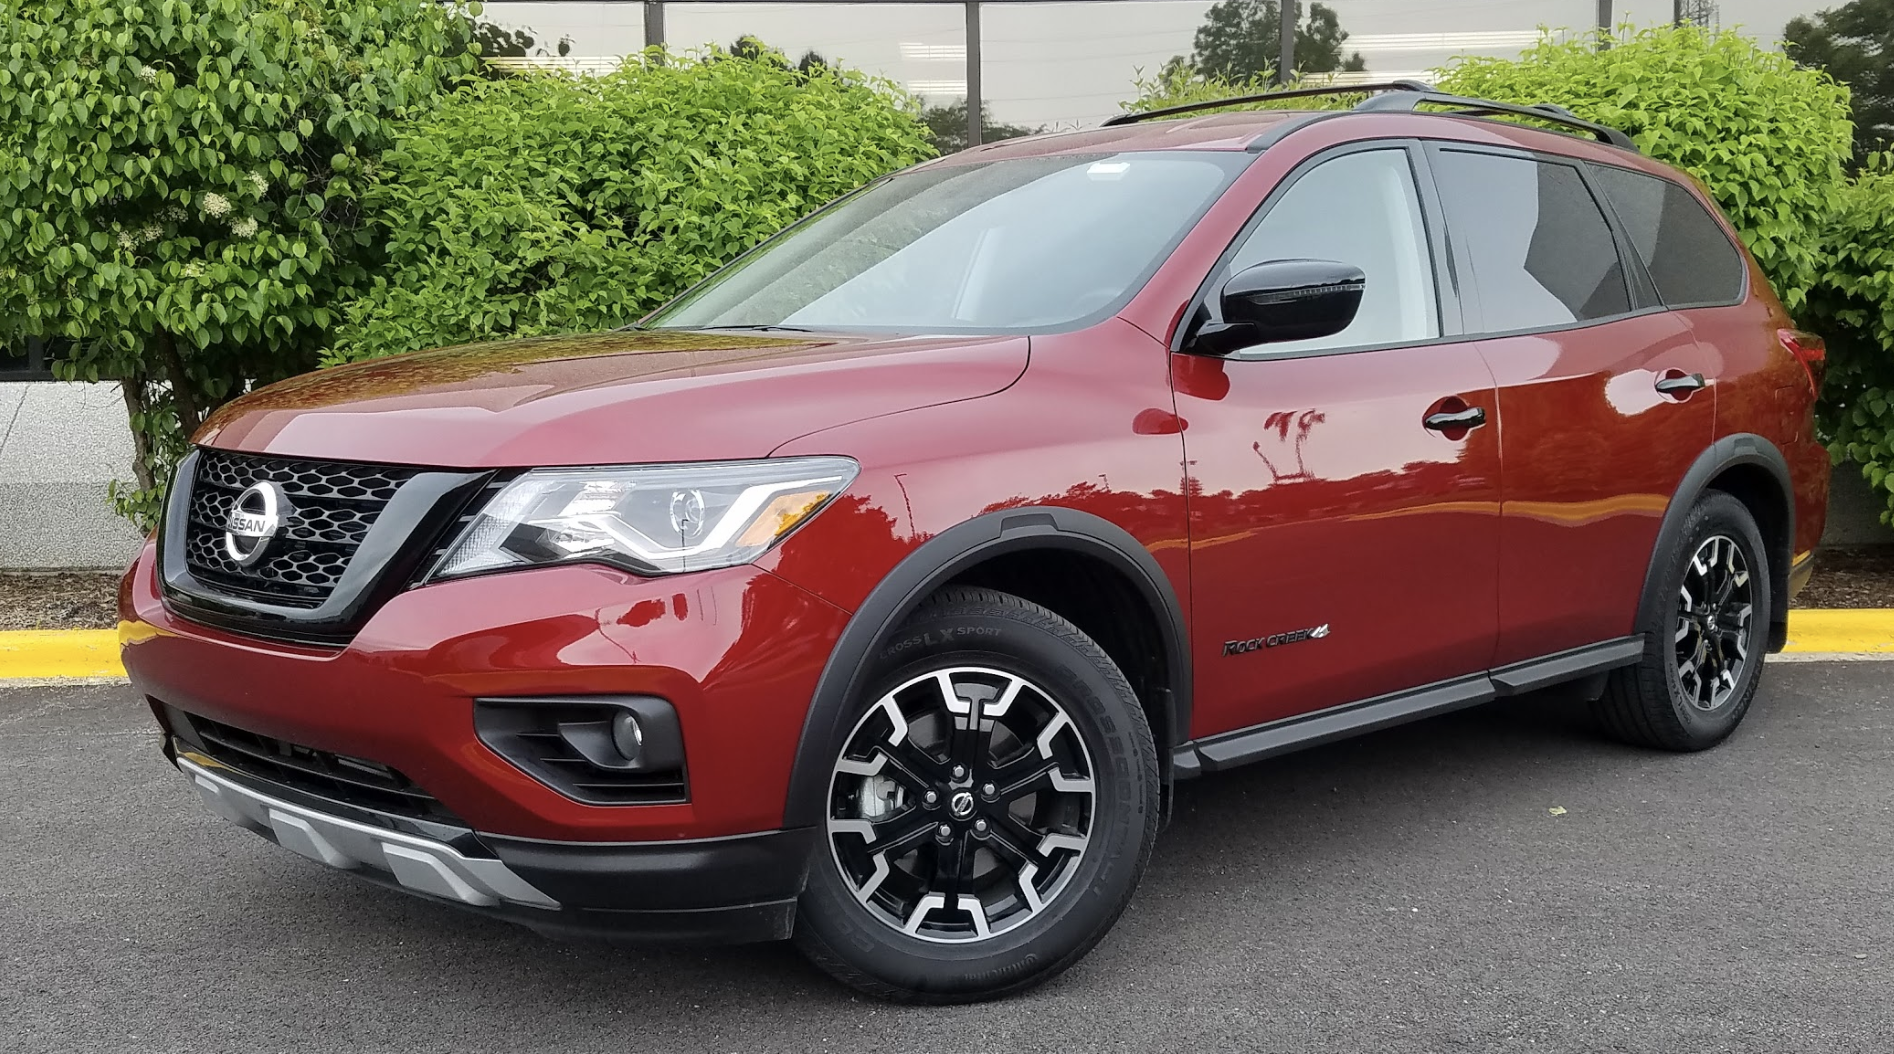 2019 Nissan Pathfinder The Daily Drive | Consumer Guide®